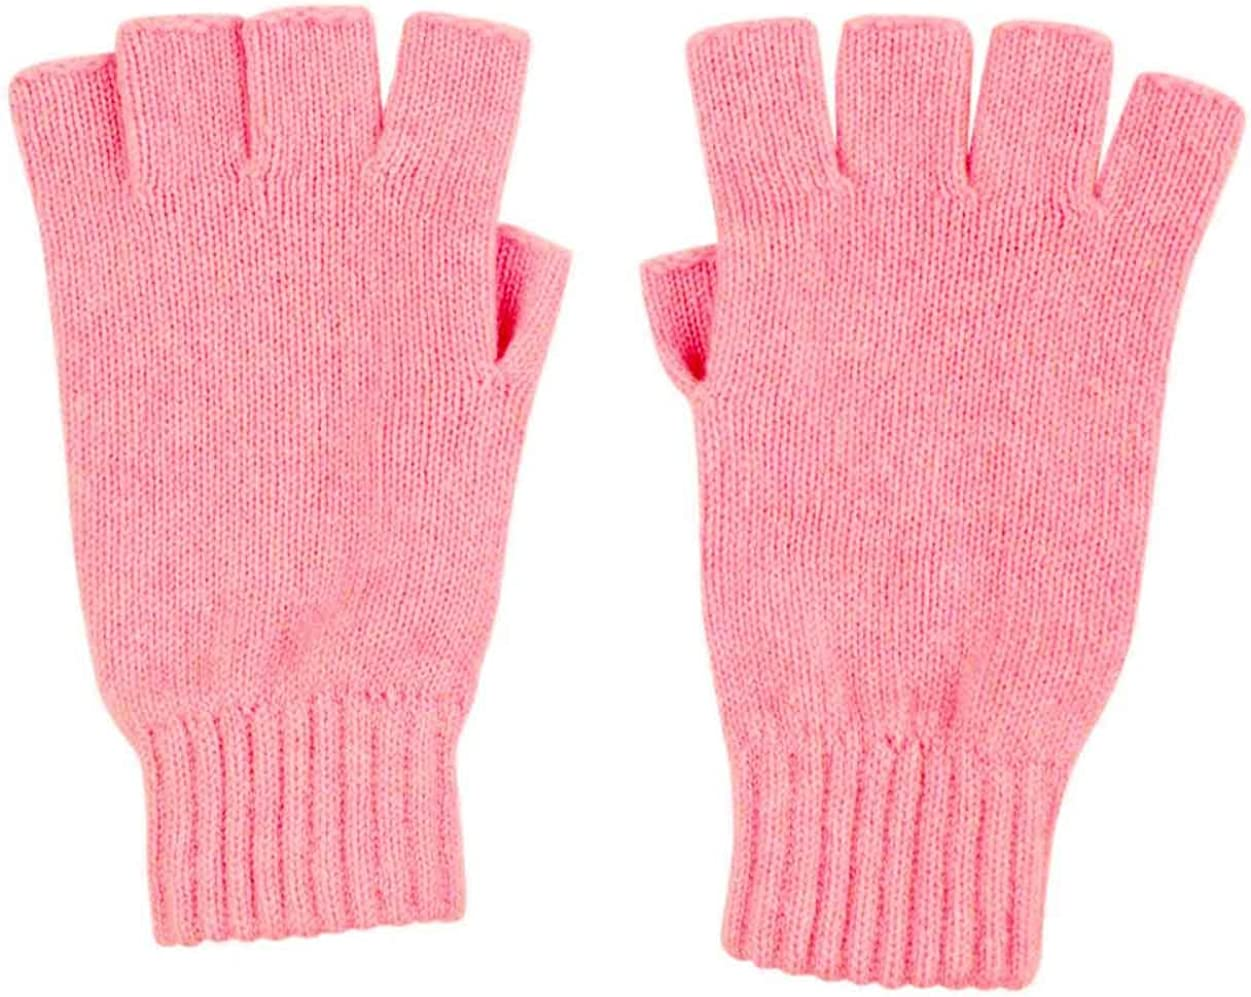 Graham Cashmere Women's Unisex Cashmere Fingerless Gloves Gift Boxed One size Pink